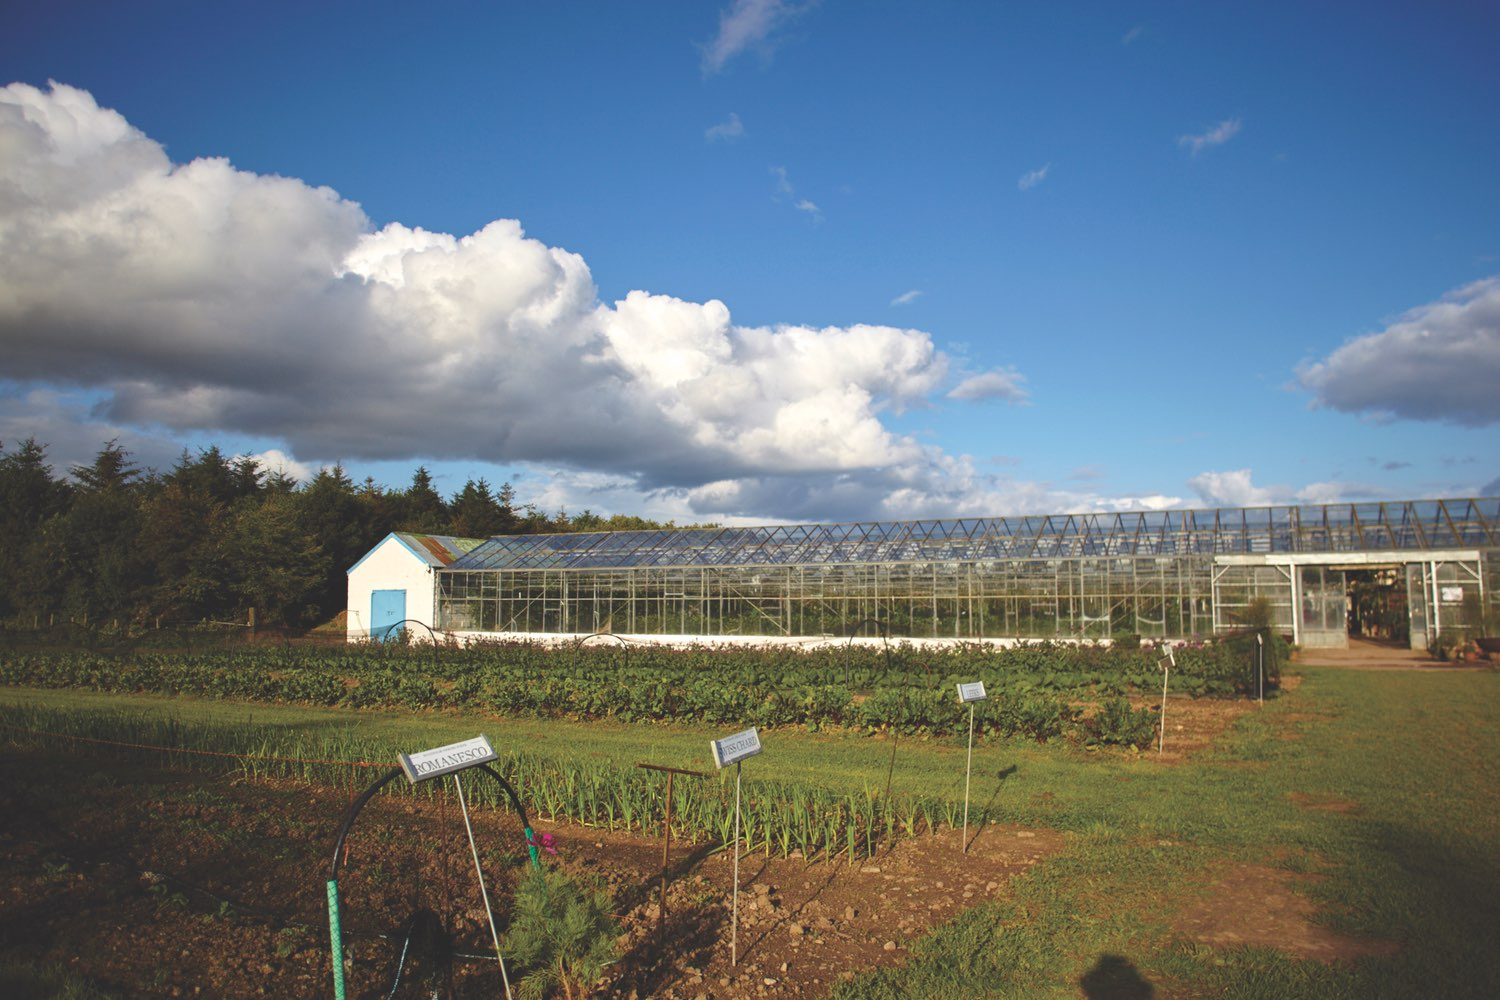 One of the greenhouses that sits on Ballymaloe Cookery School property